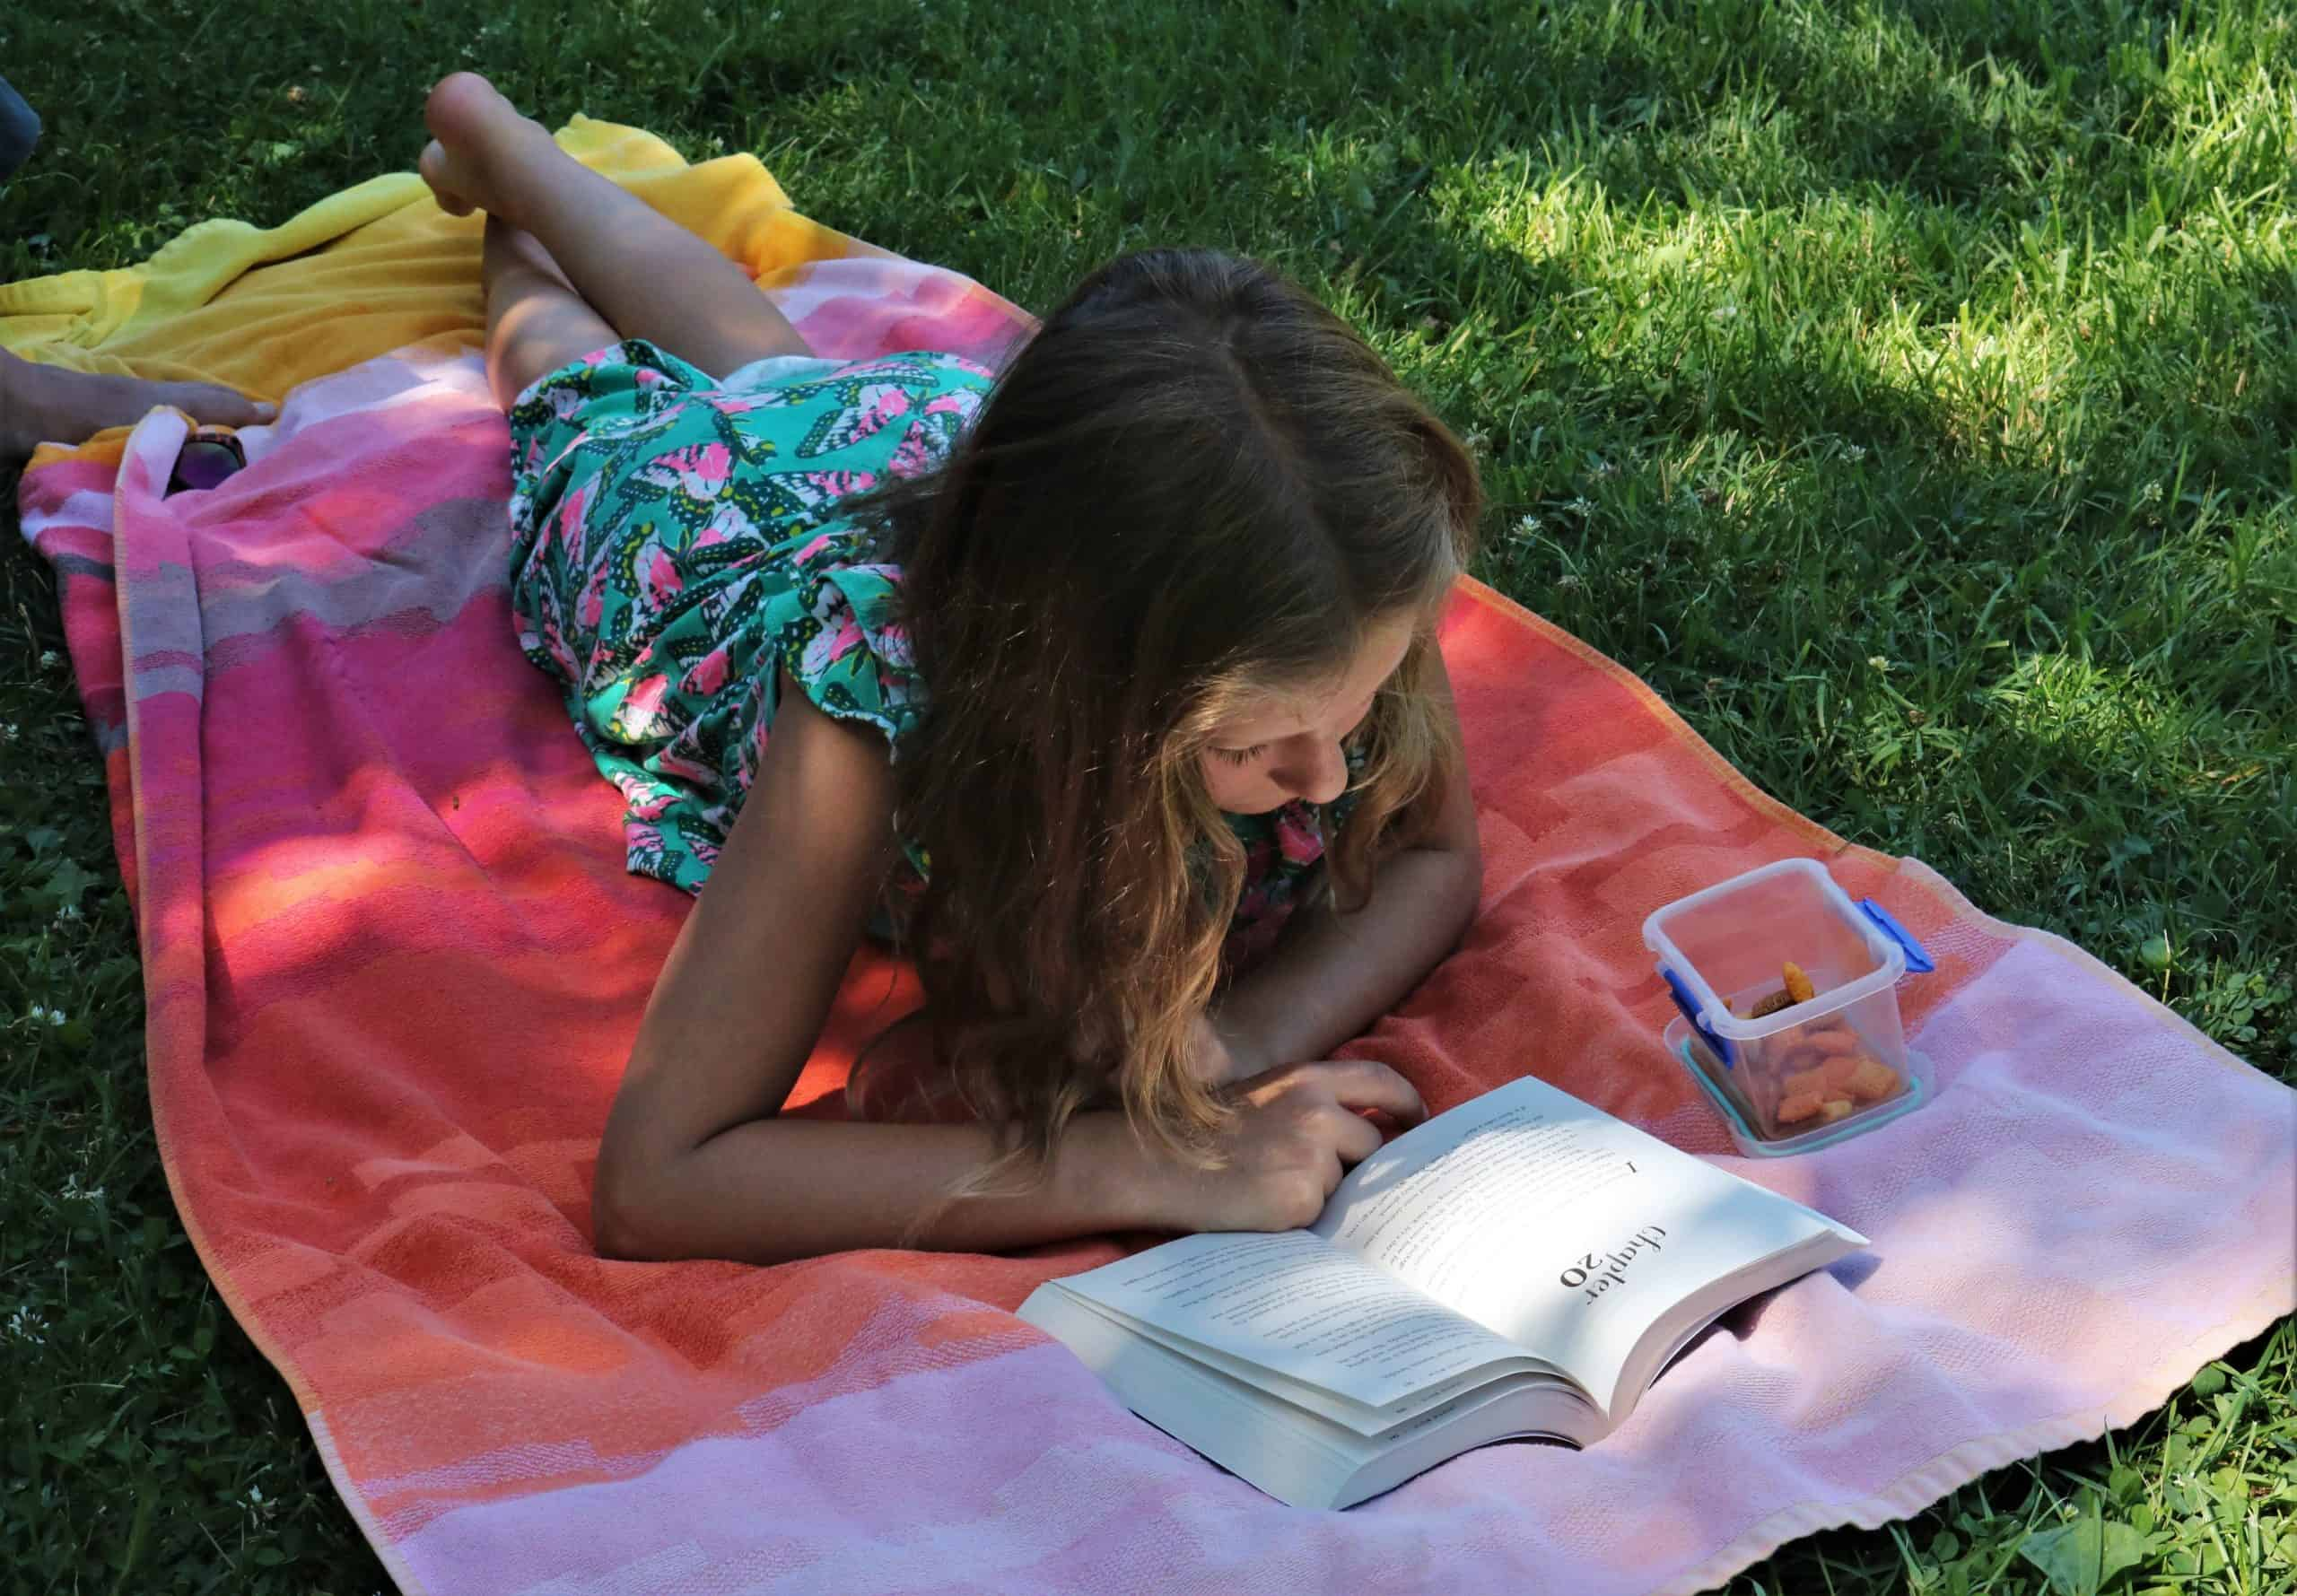 Summer reading programs - girl on striped blanket in grass reading a book